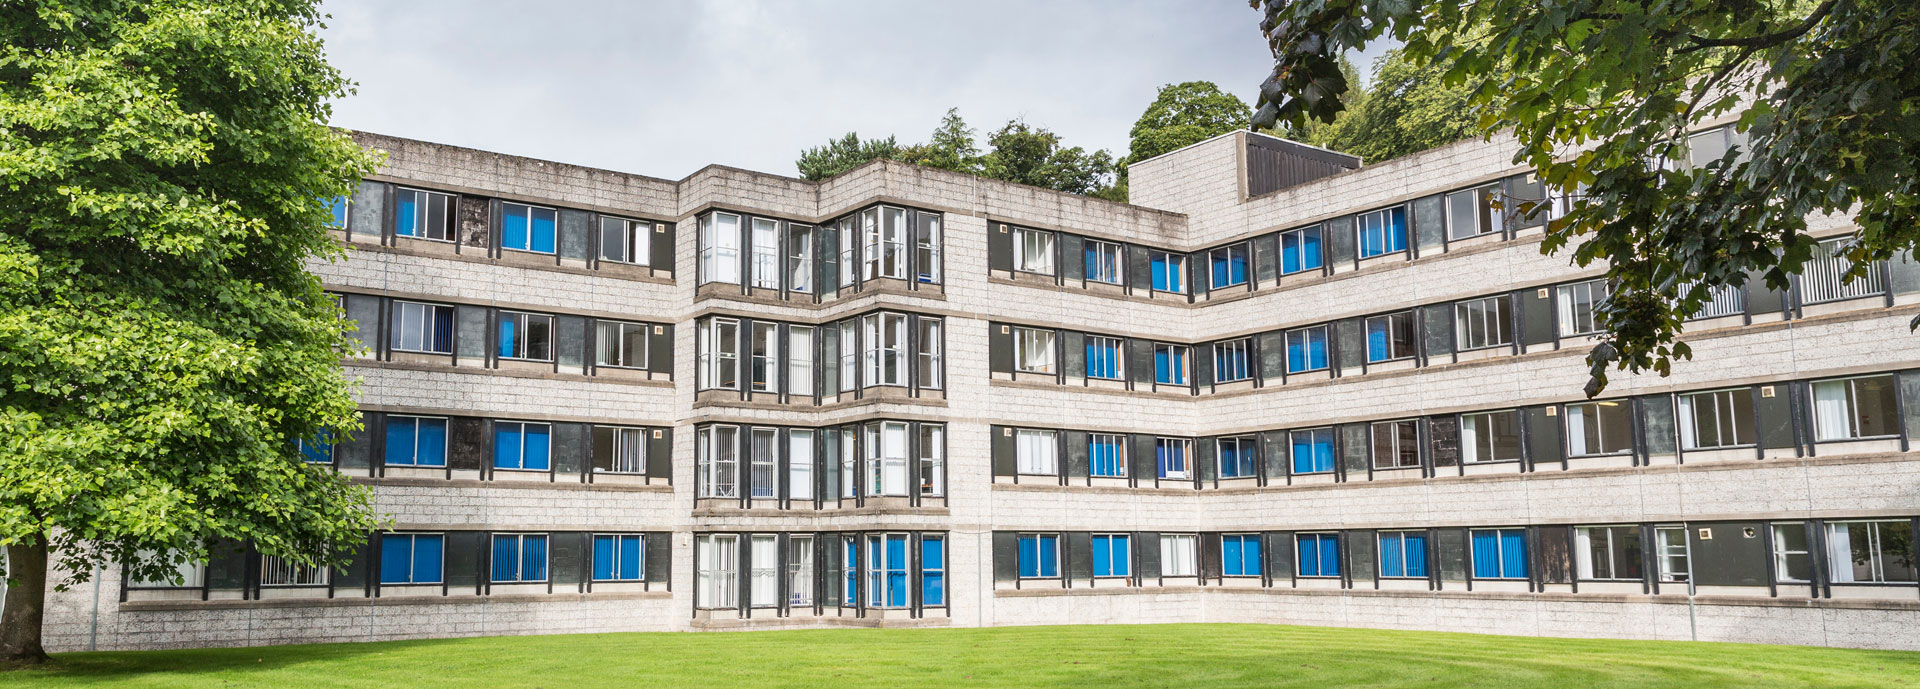 Muirhead House accommodation,  University of Stirling